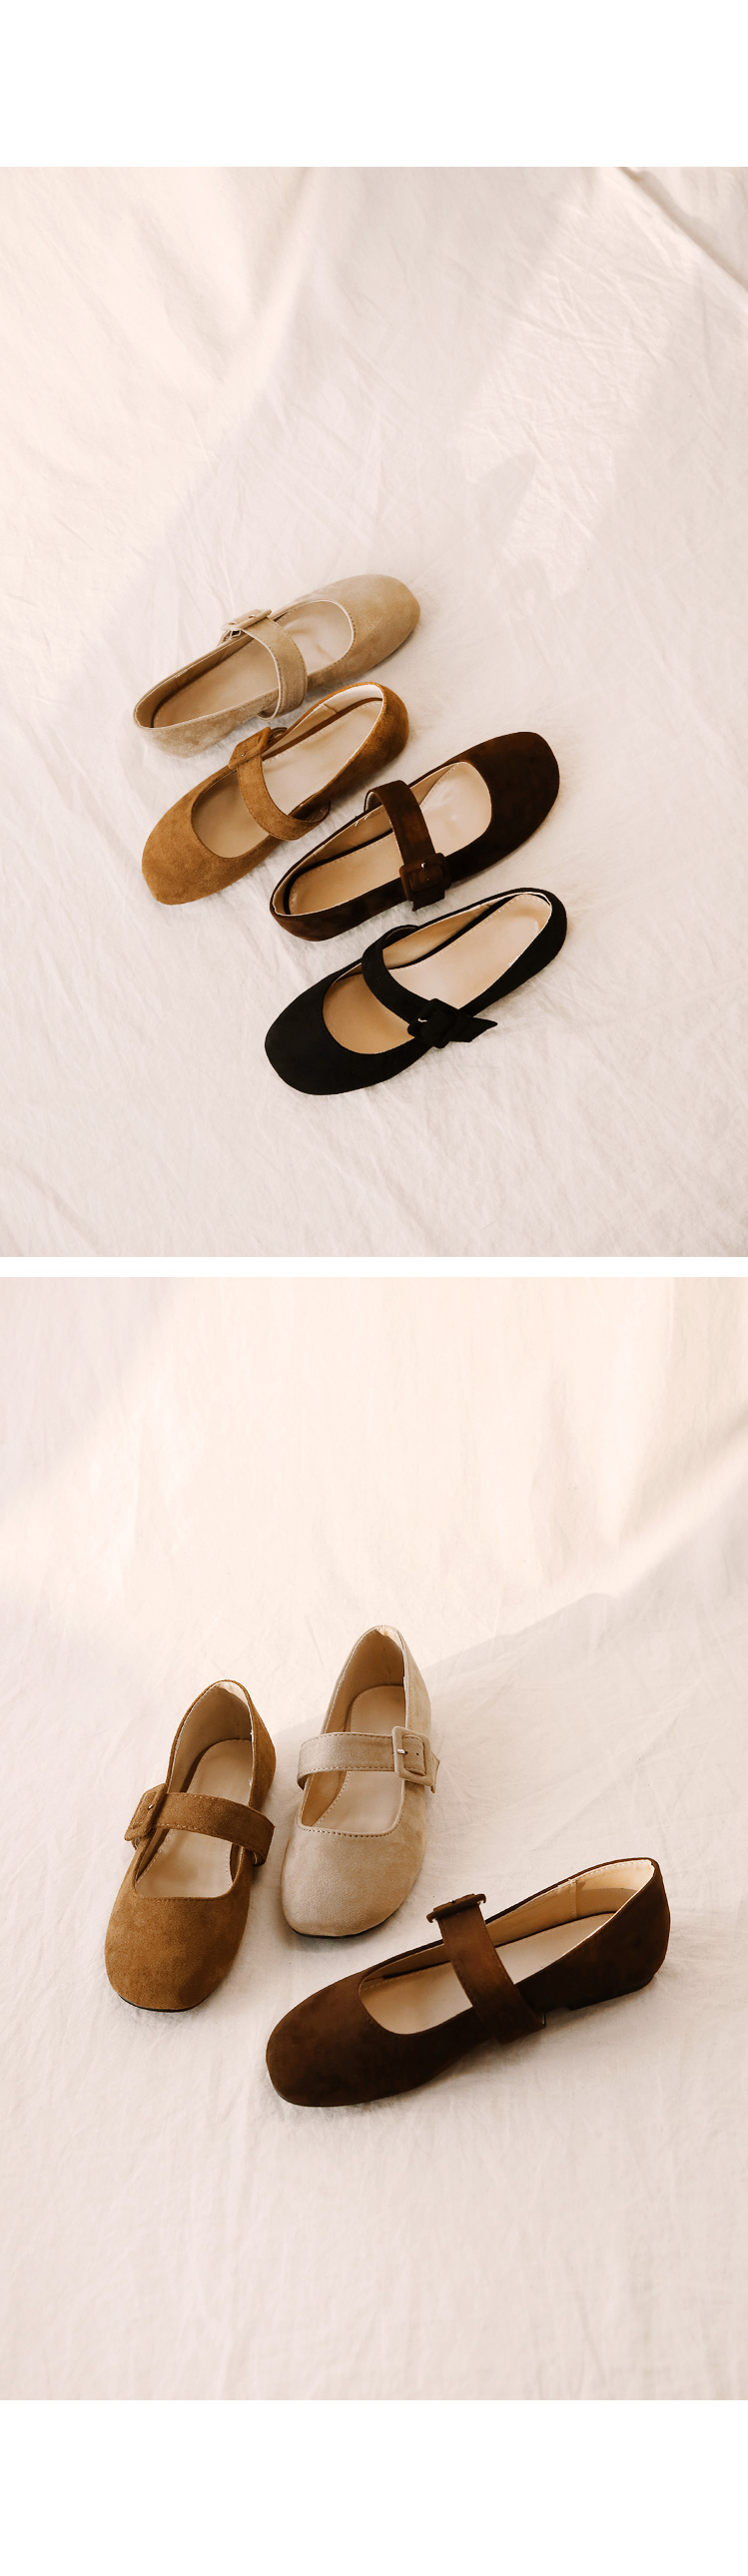 Buckled Strap Accent Velvety Loafers